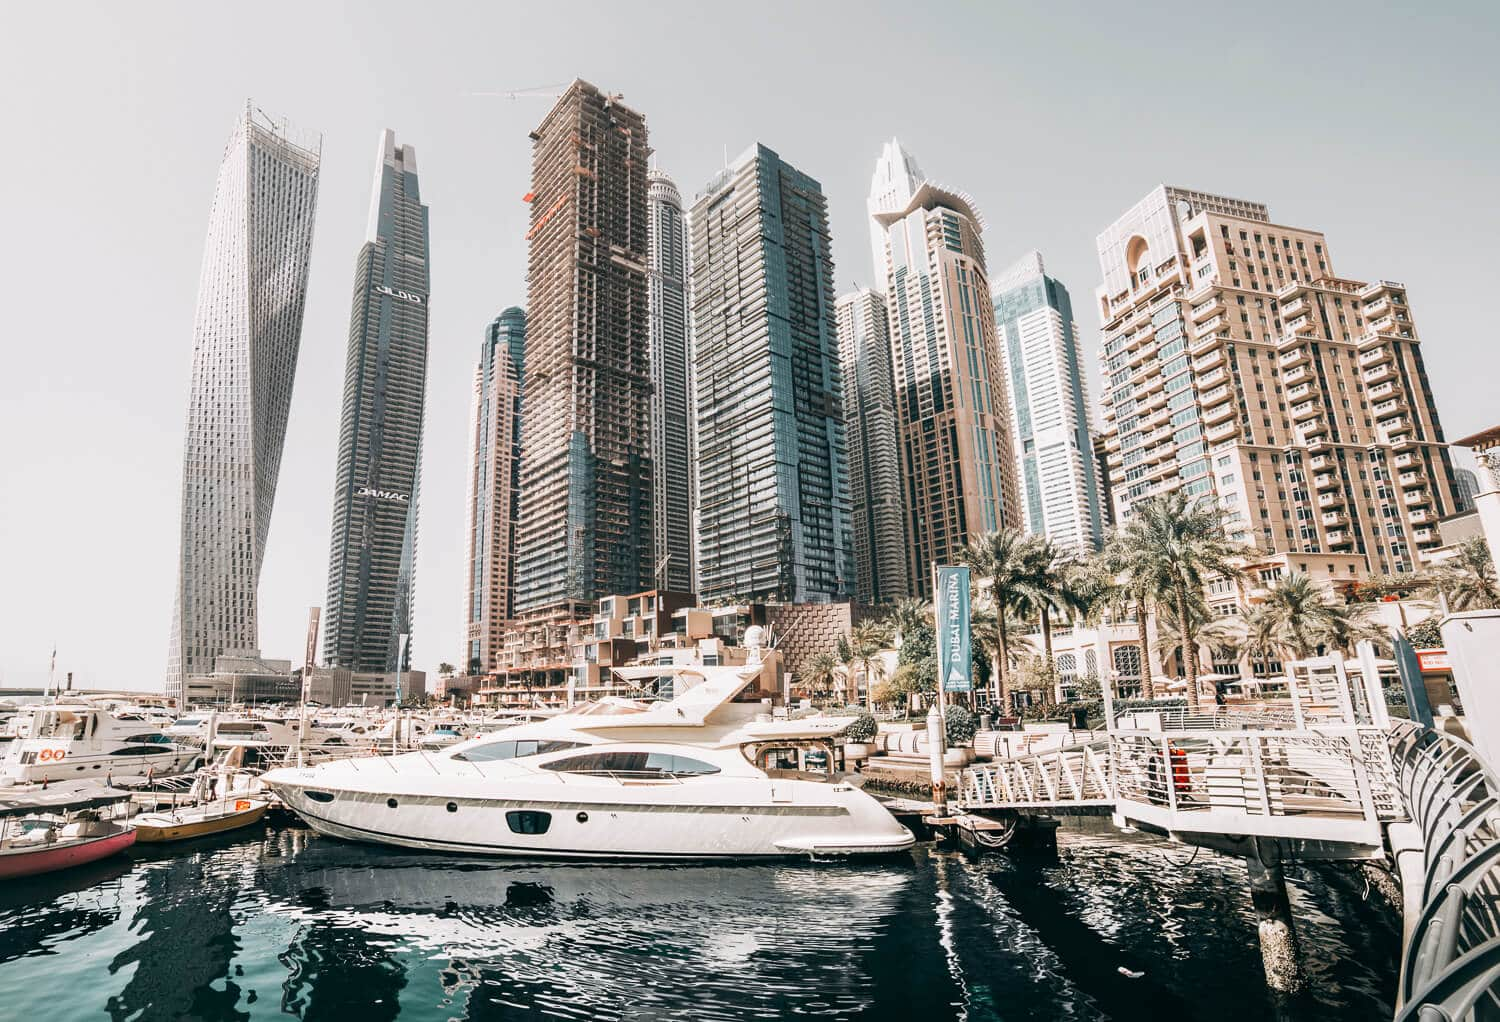 The Dubai Marina // The Ultimate Dubai Travel Guide // Everything you need to know for a visit to the United Arab Emirates including transportation tips, things to do, what to wear, photography and more!